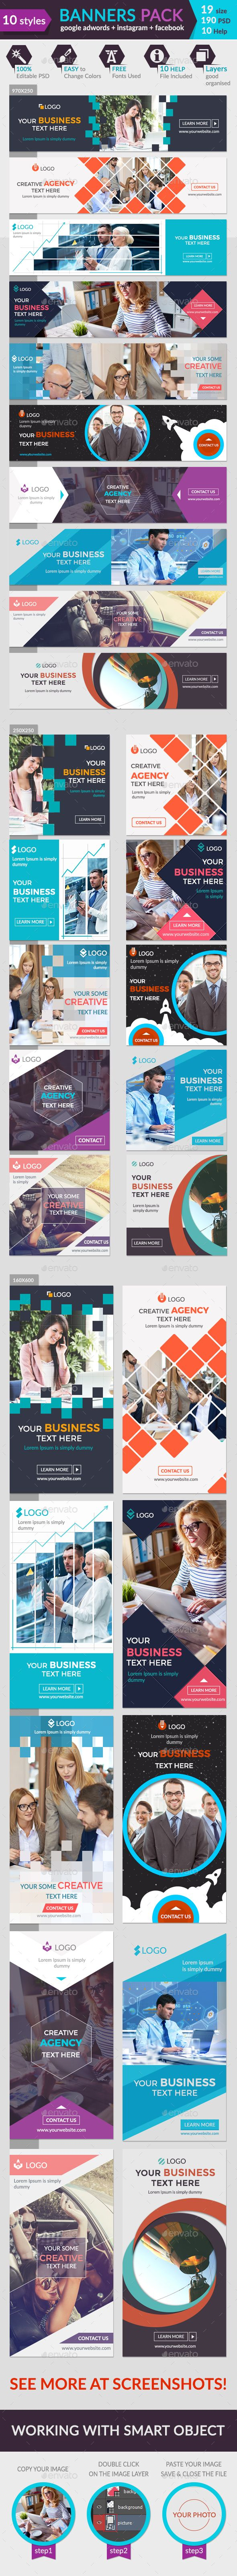 Banner Design Ideas banner faith ideas Banners Pack Design Template Banners Ads Web Elements Template Psd Download Here